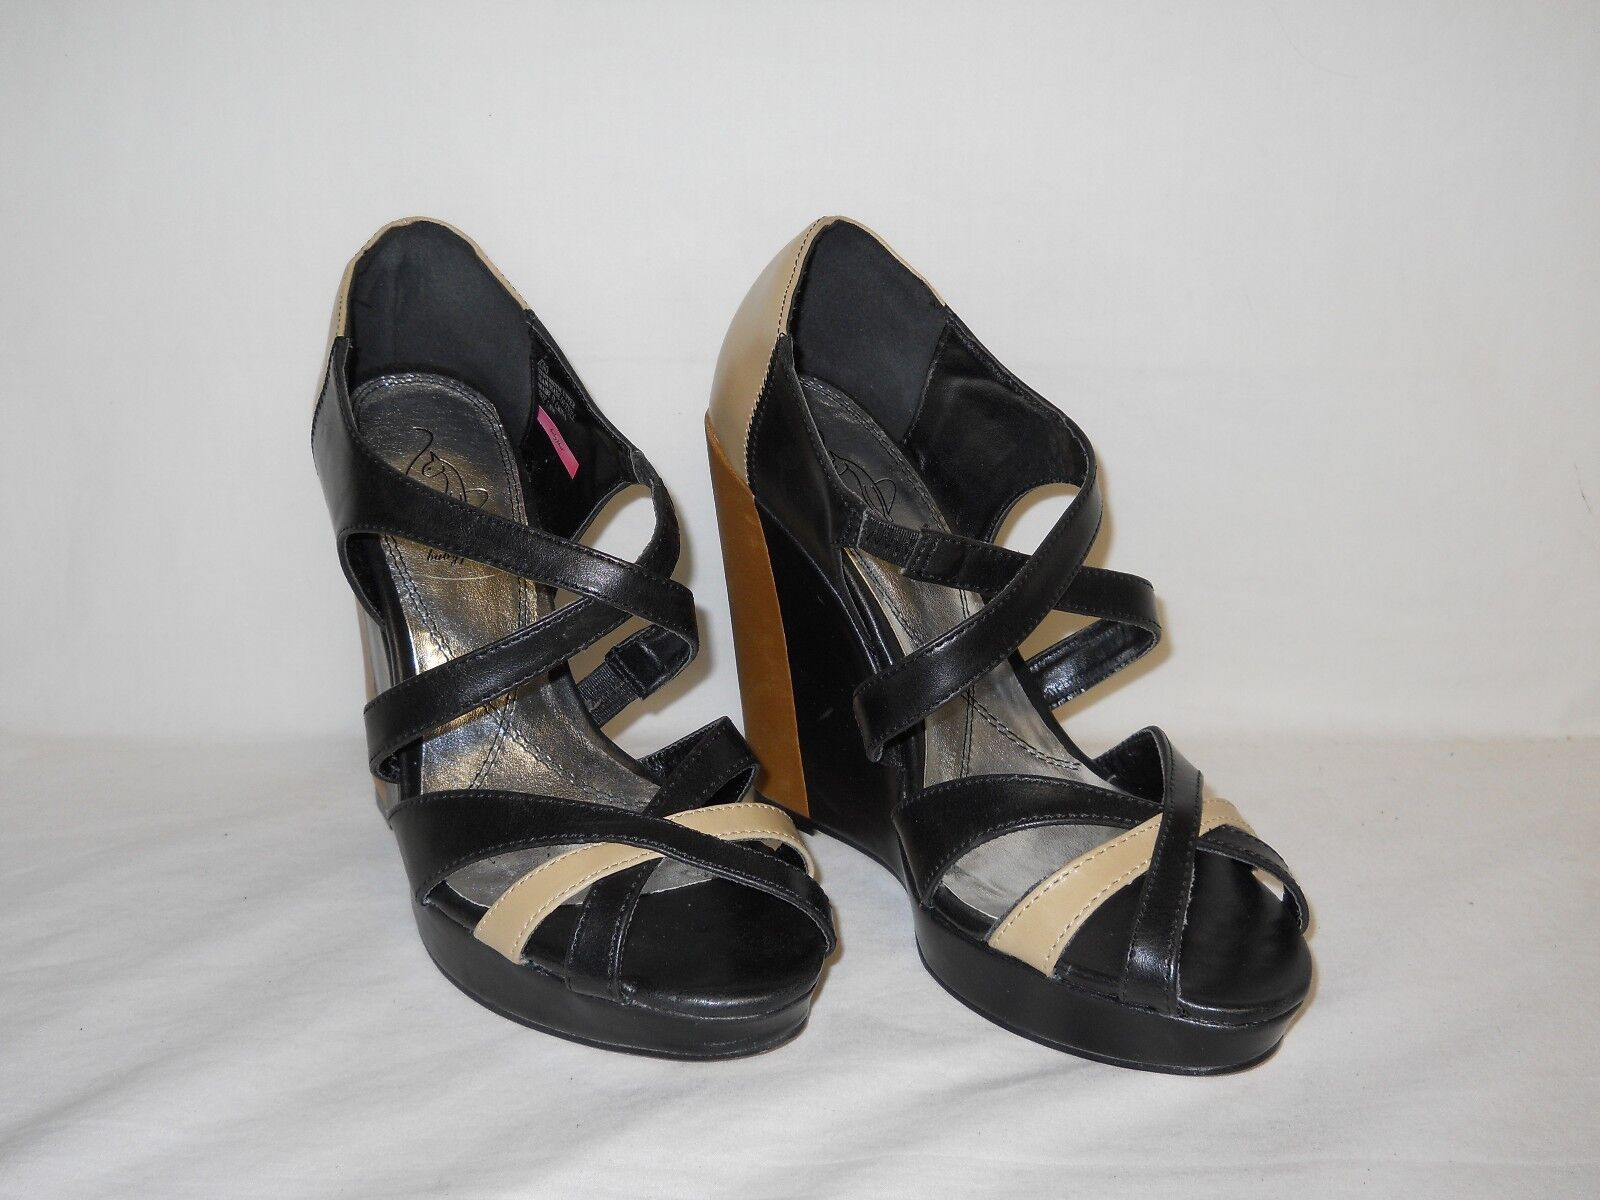 Baby Phat New Display Model Womens Juno Black Tan Wedge Sandals 7.5 M shoes